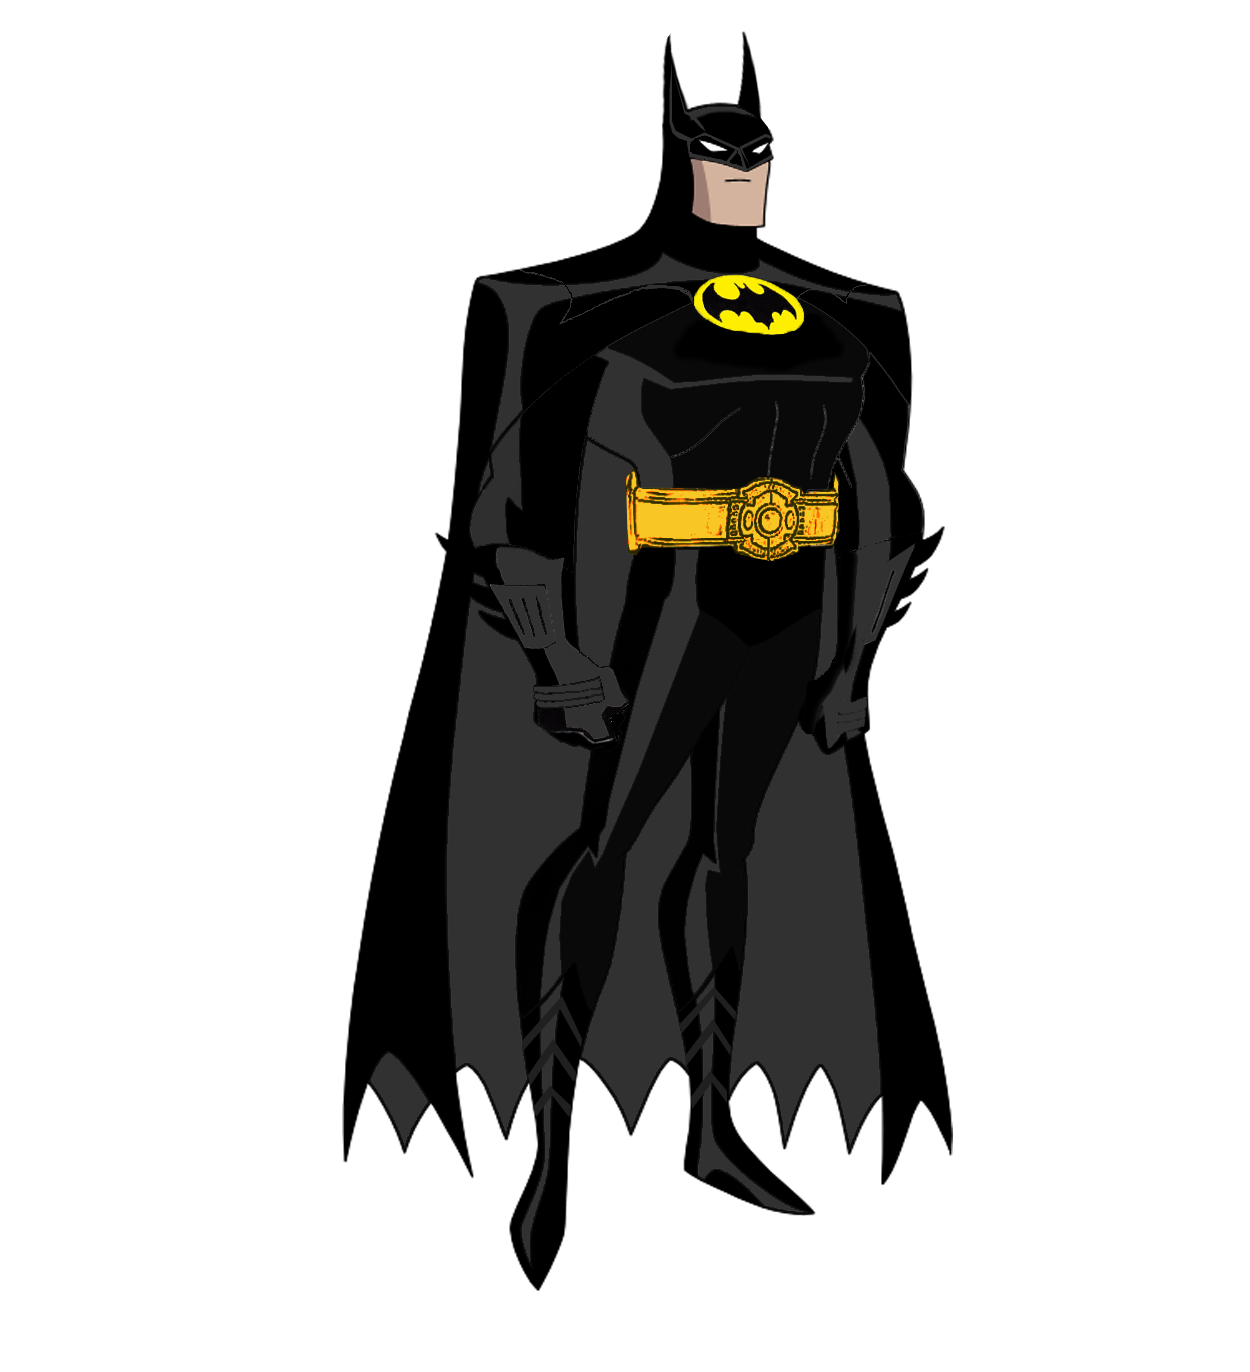 Download this high resolution Batman Icon PNG